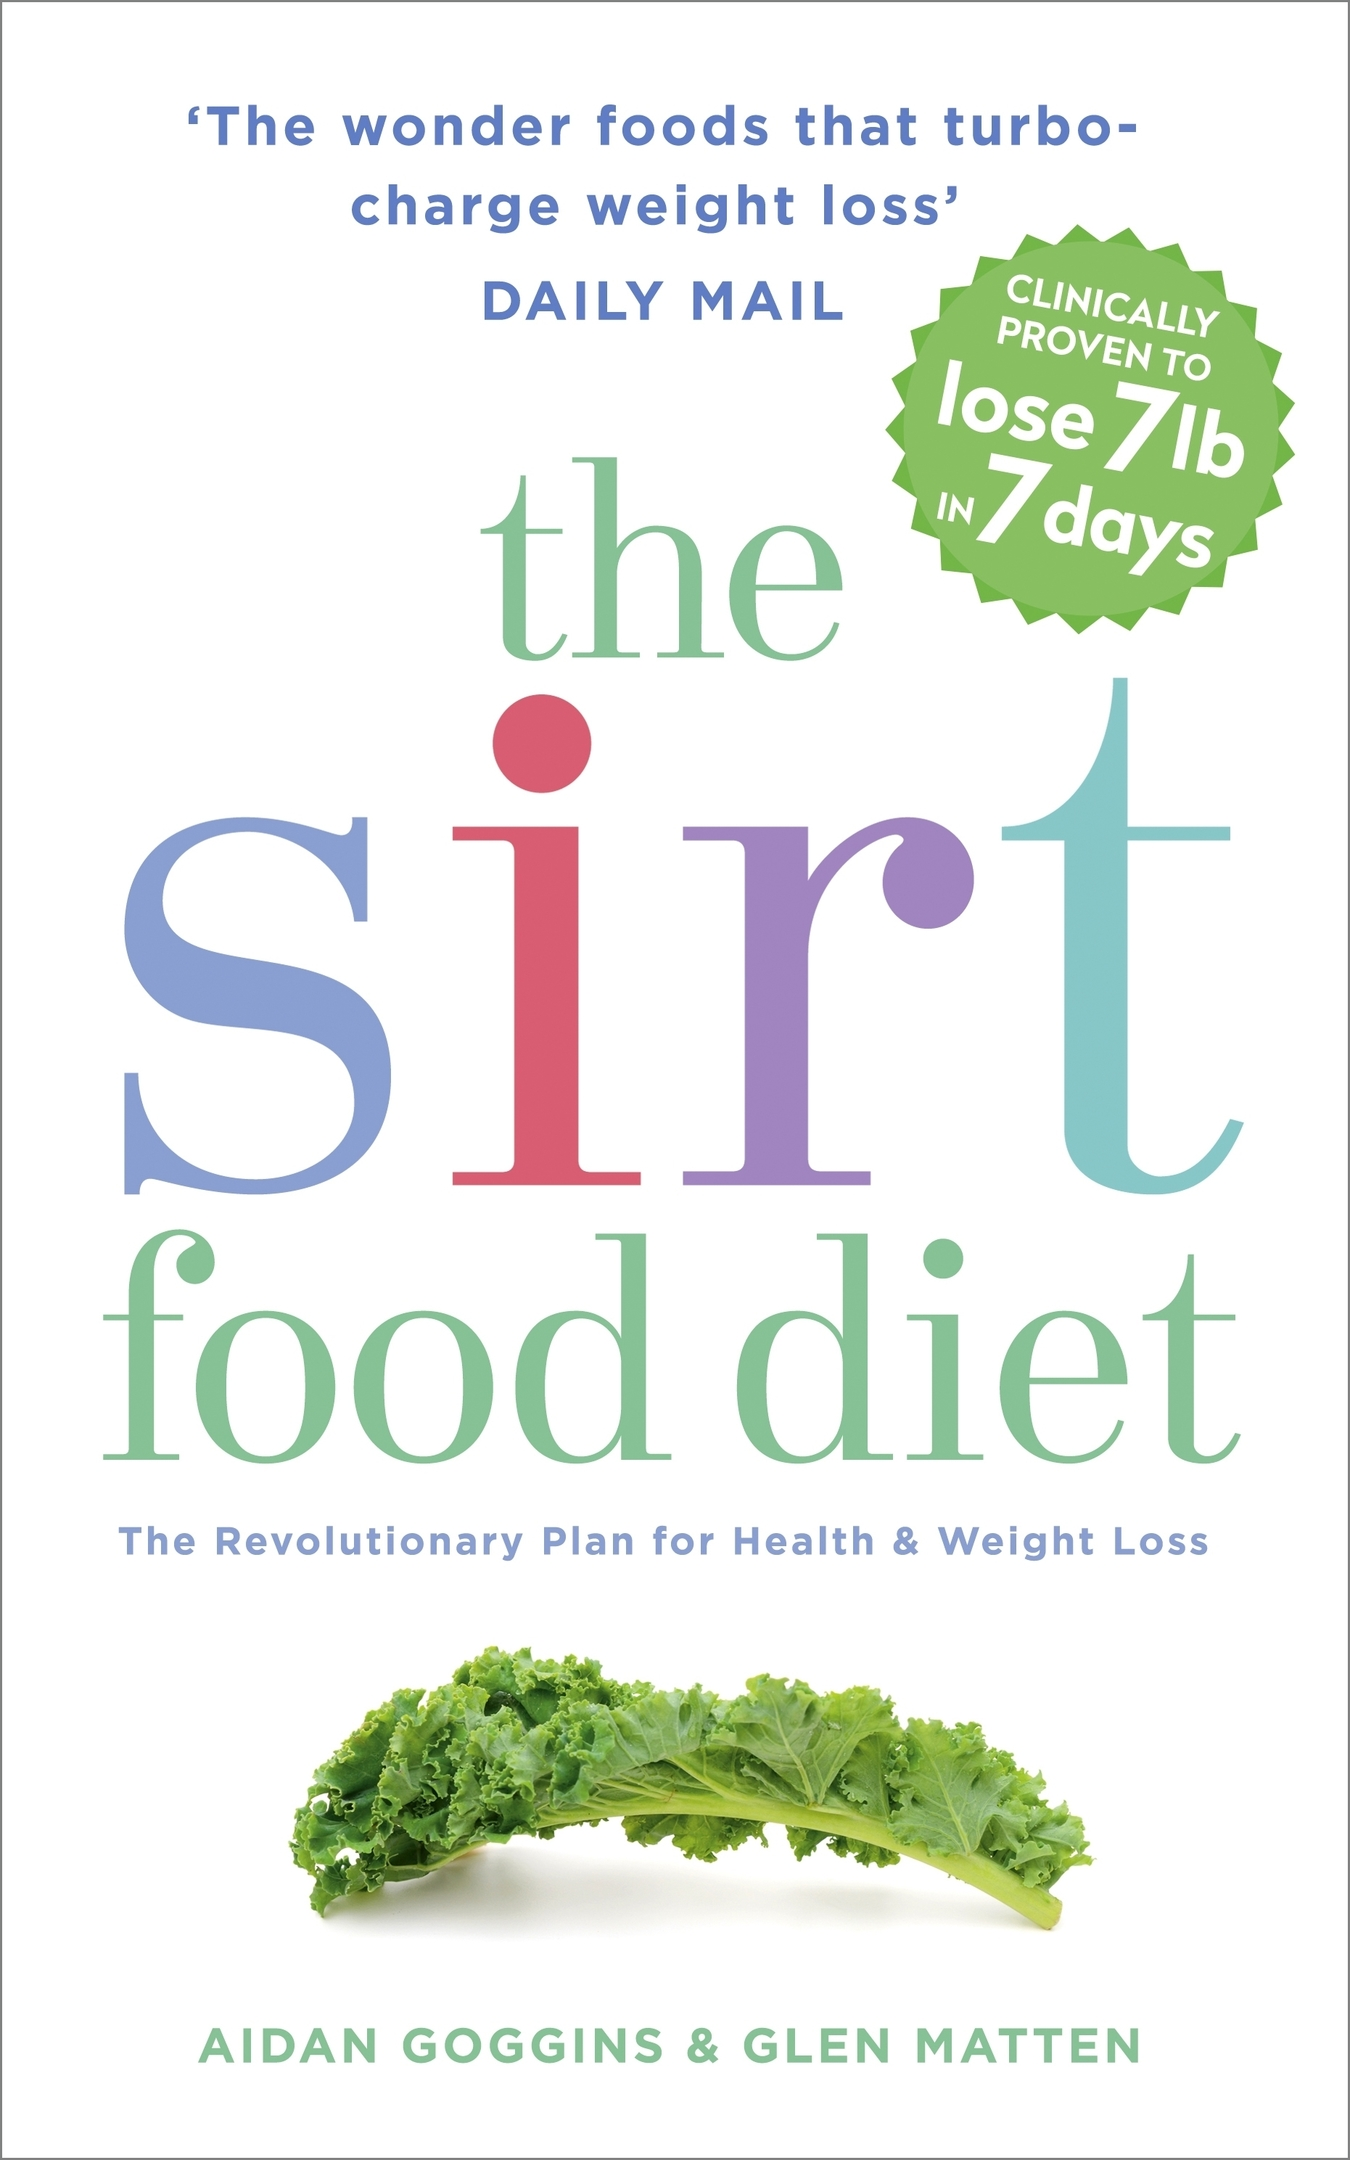 TOPICAL Sirtfood Diet 091456